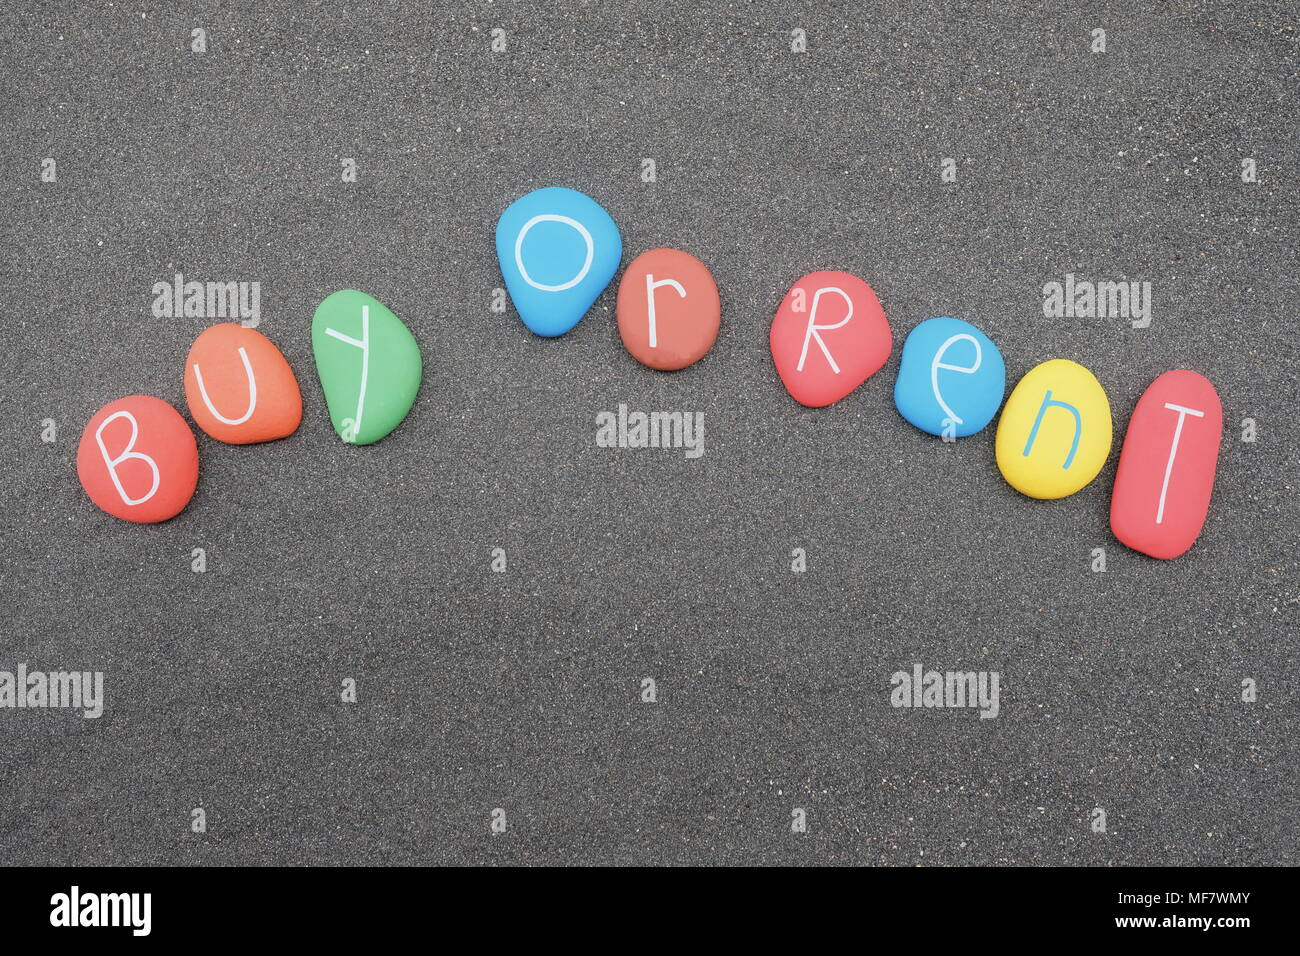 Buy or rent, business doubt with multicolored stones design over black volcanic sand - Stock Image